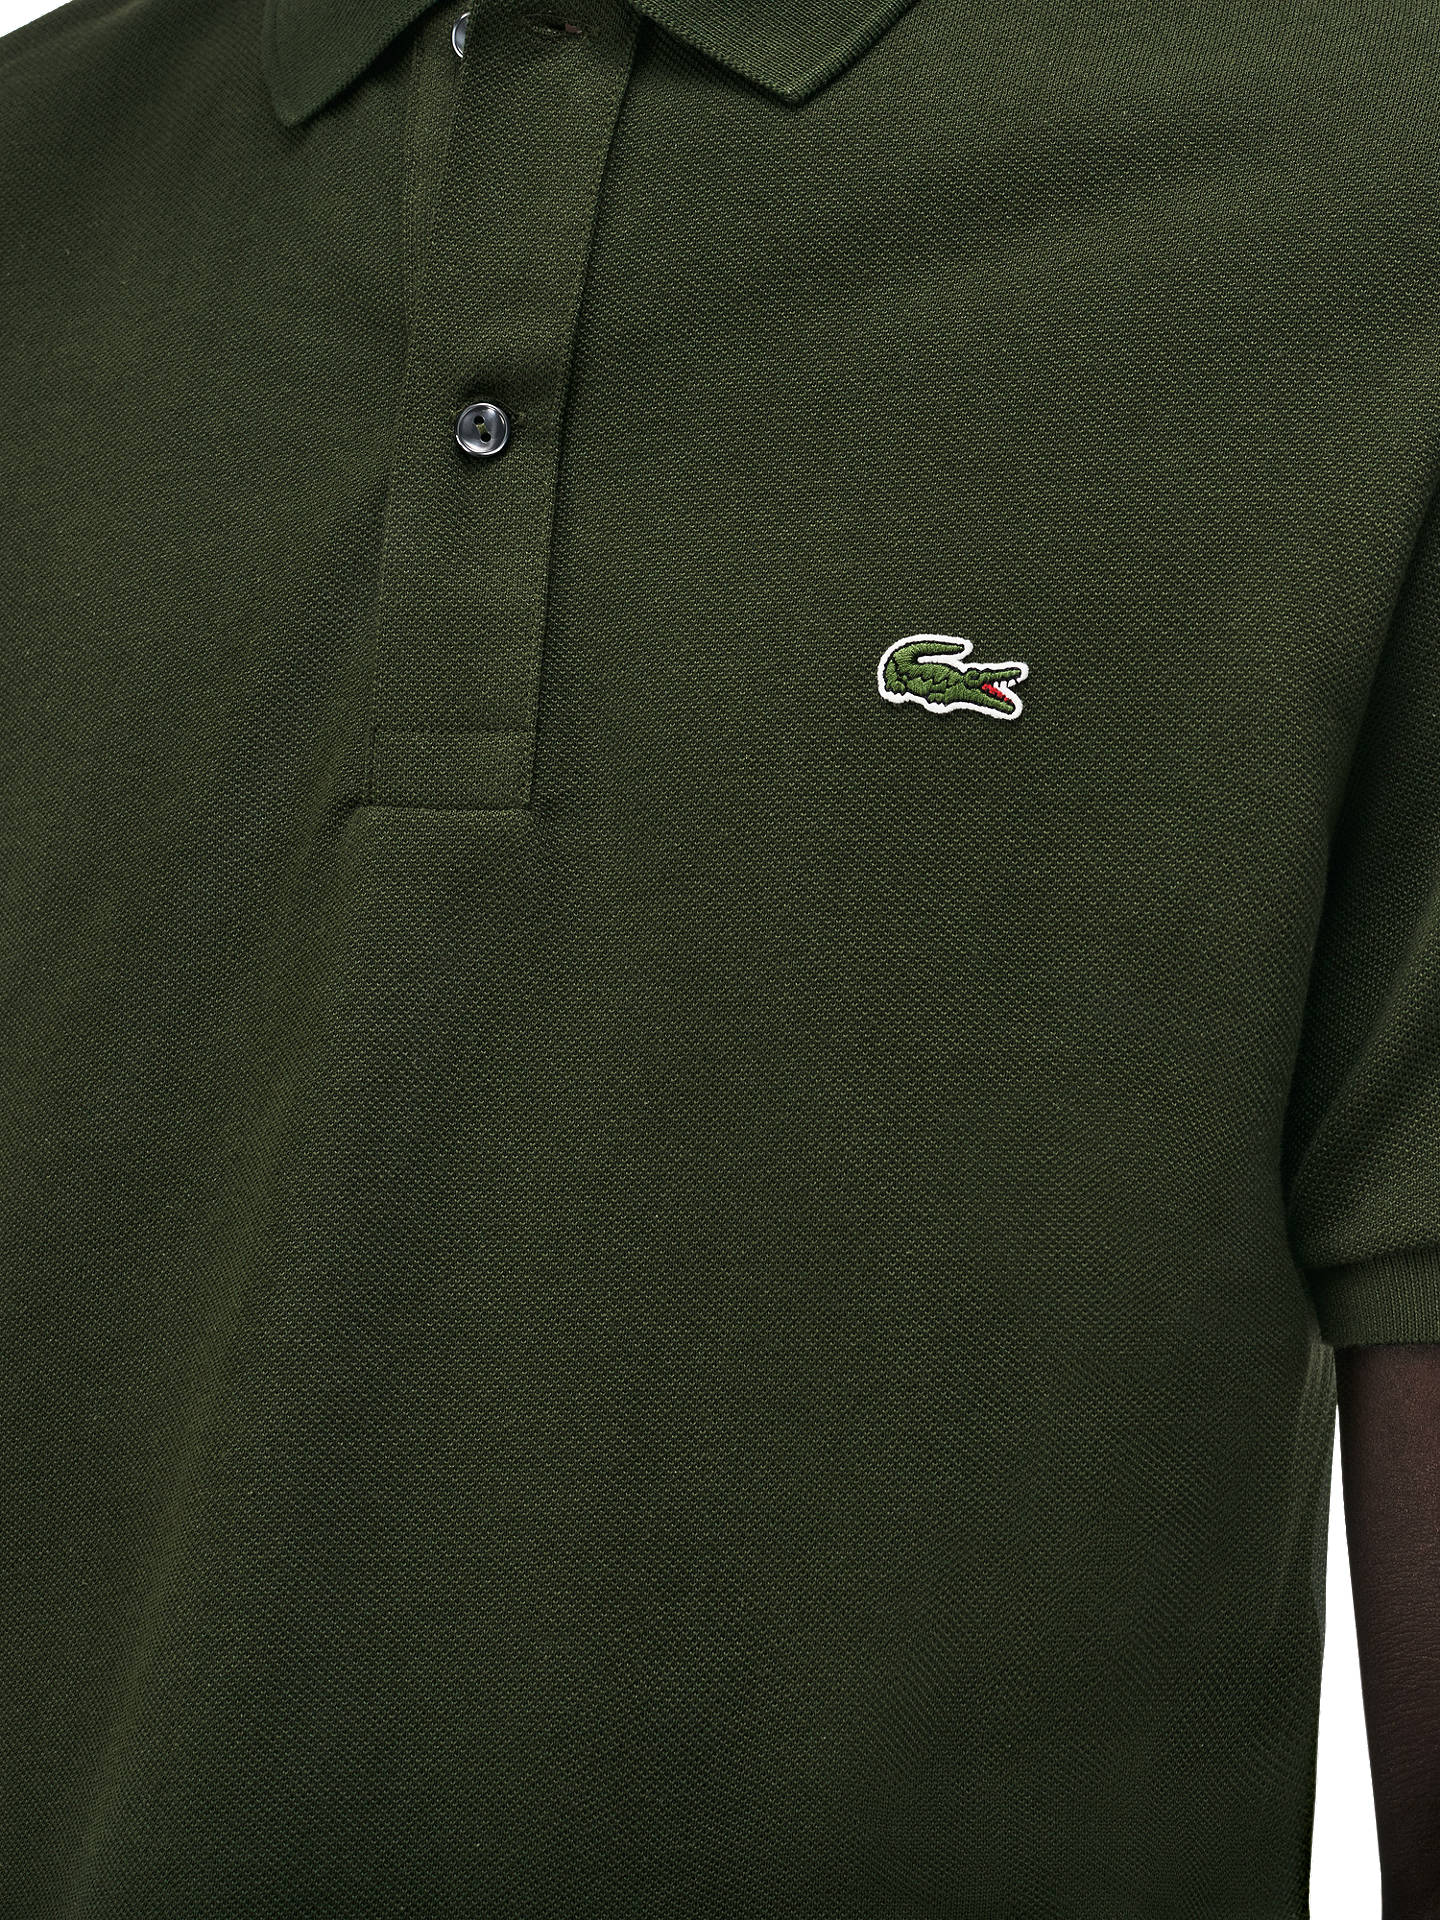 0b7195f0 ... Buy Lacoste Classic Slim Fit Short Sleeve Polo Shirt, Army Green, S  Online at